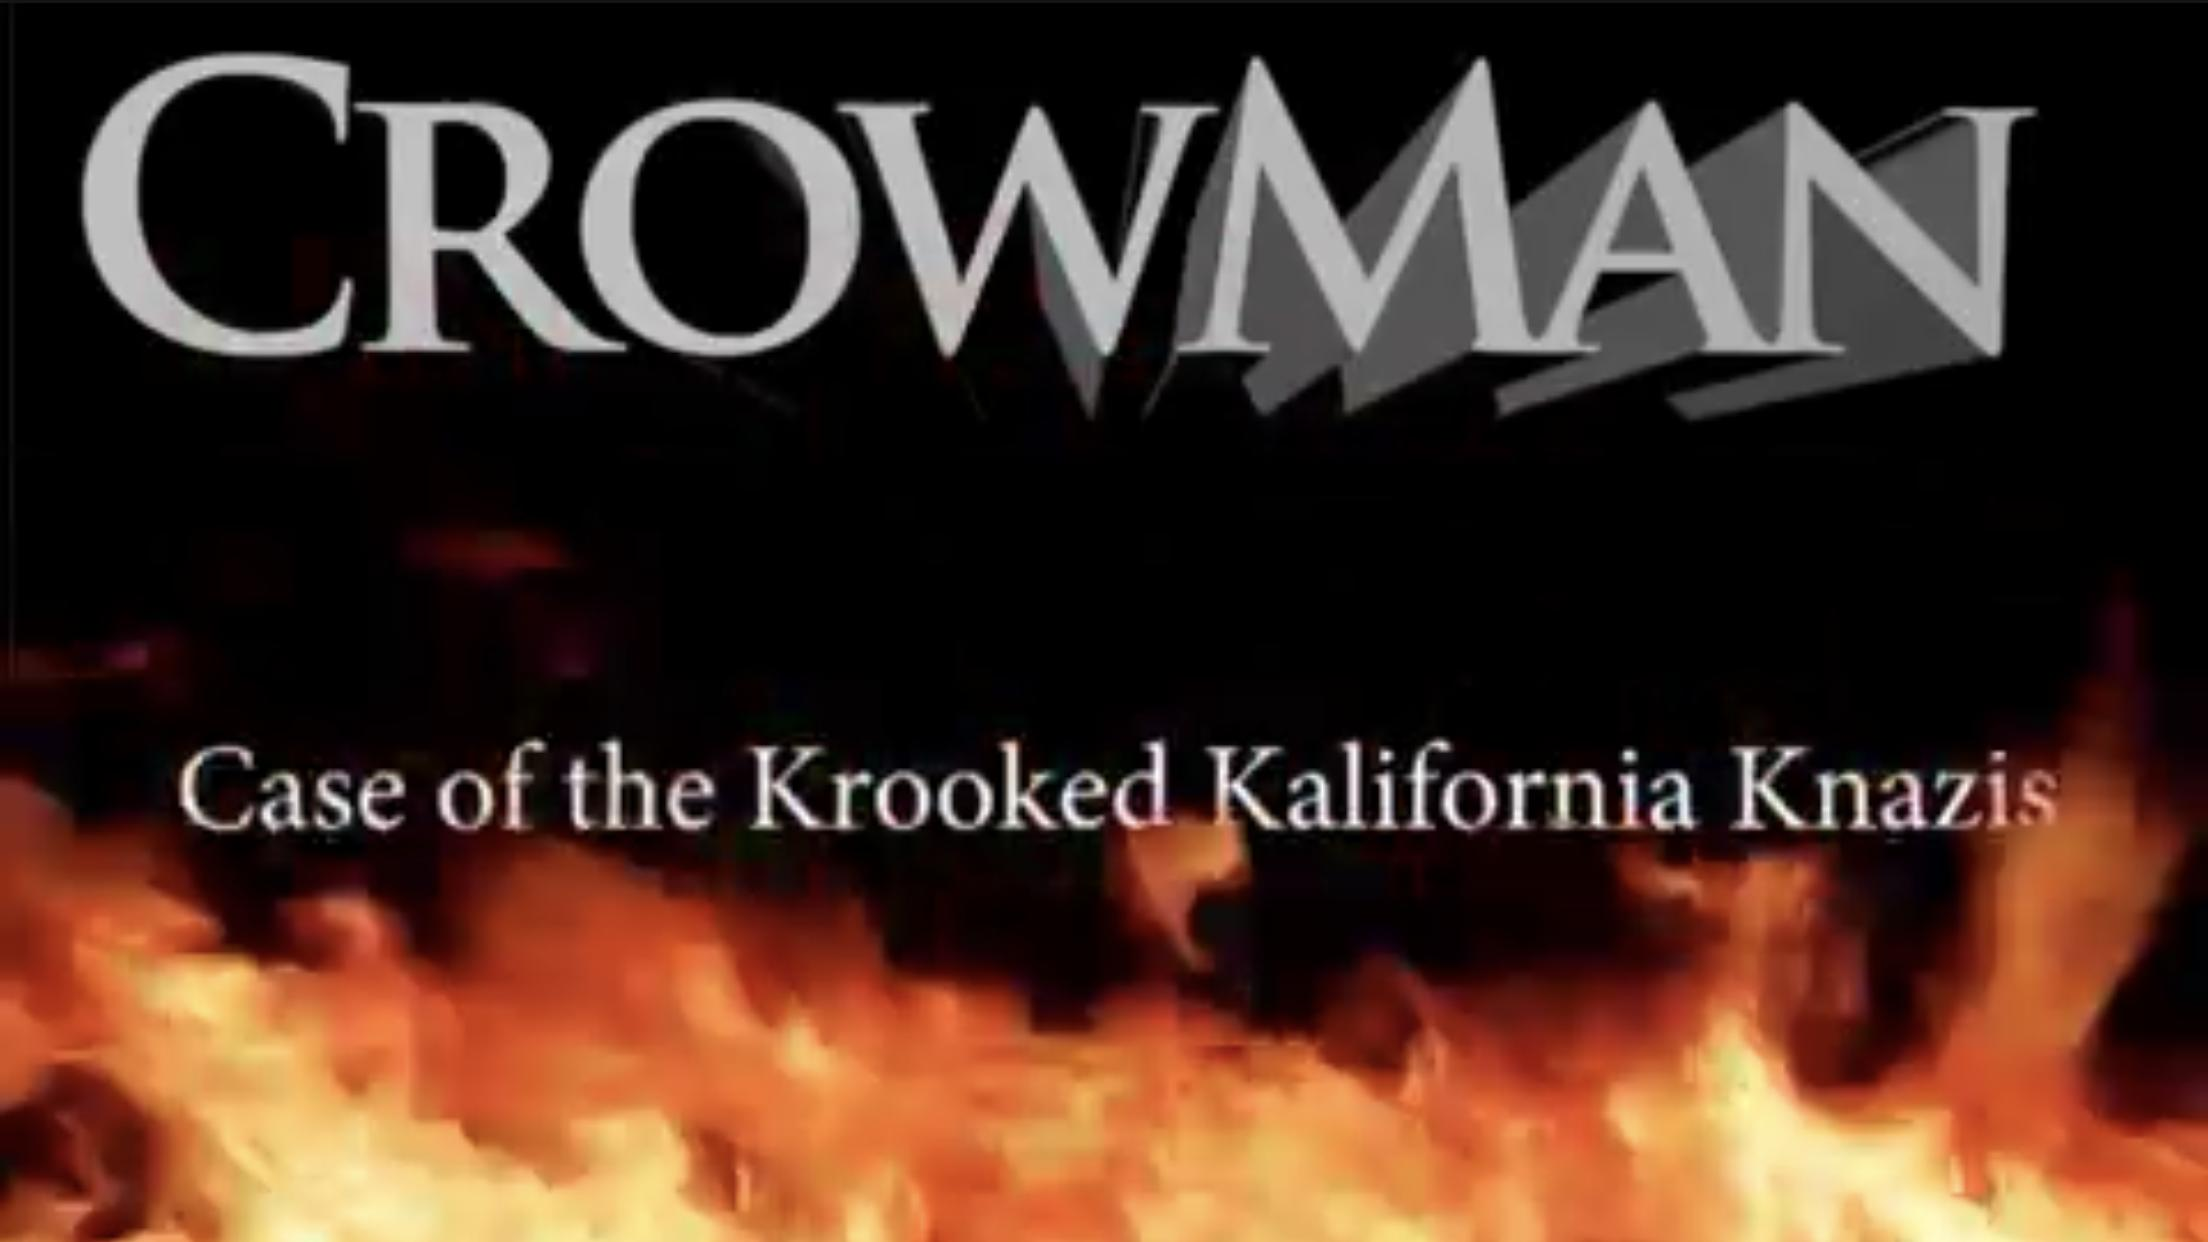 The Chronicles of Crowman: The Case of the Krooked Kalifornia Knazis